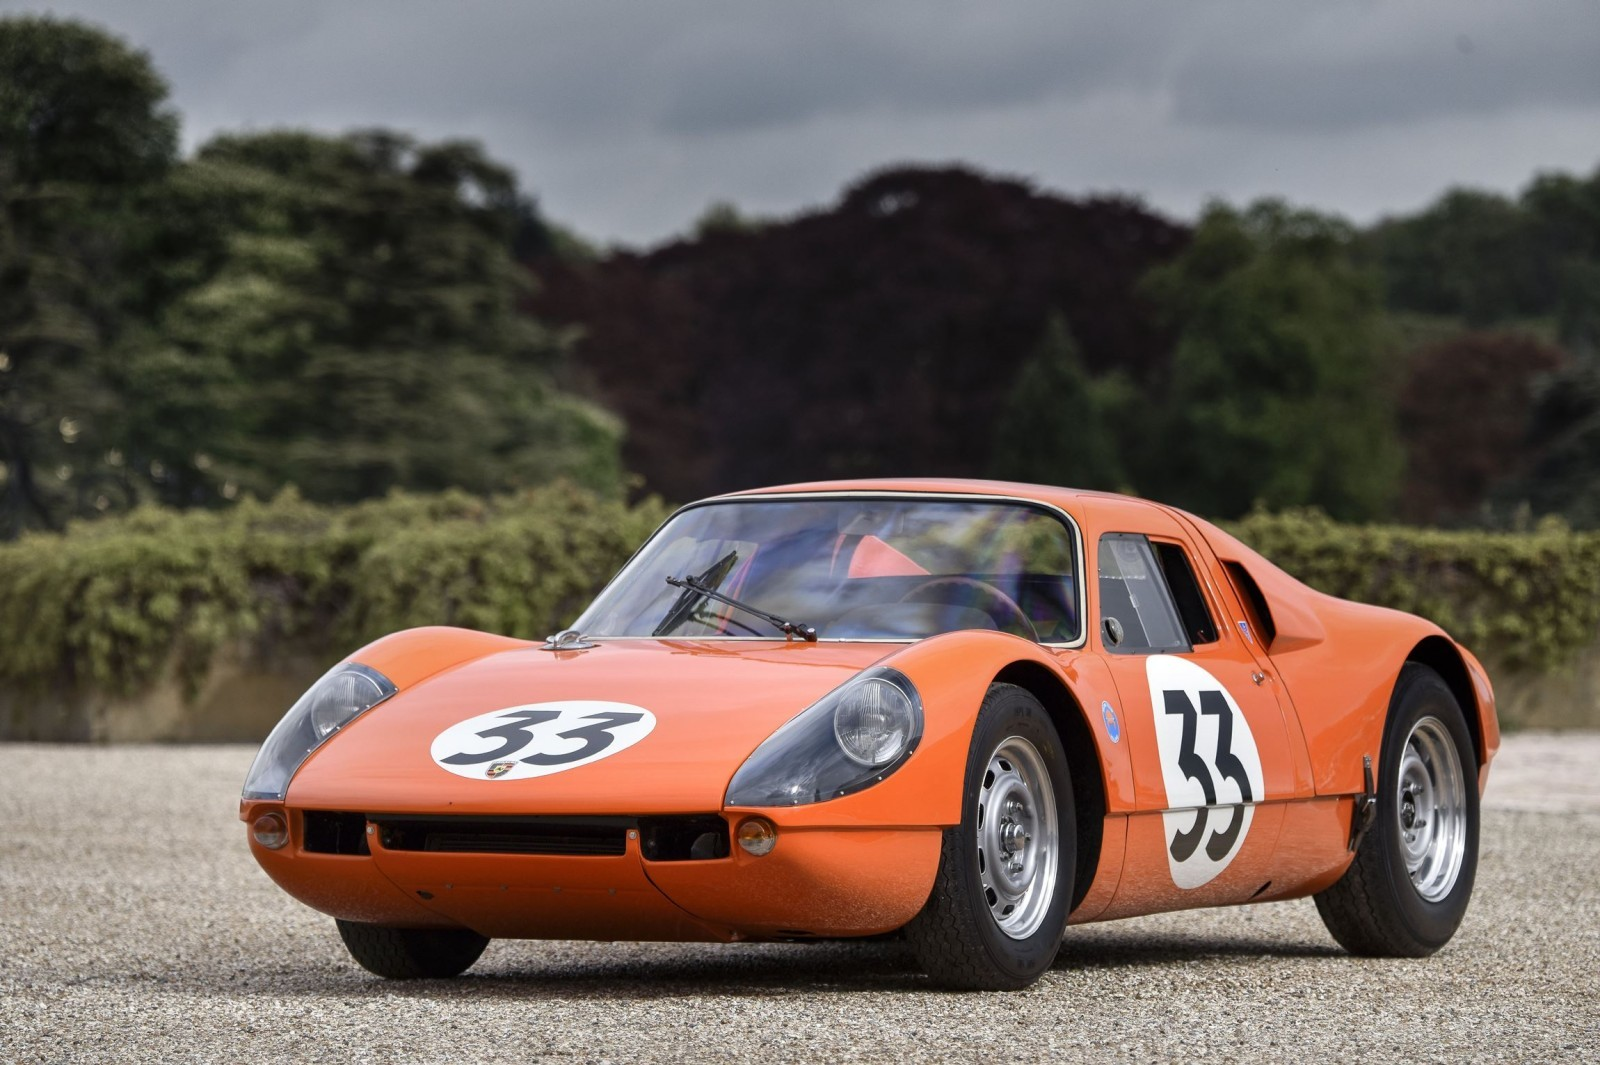 2015 Salon Prive Preview 10